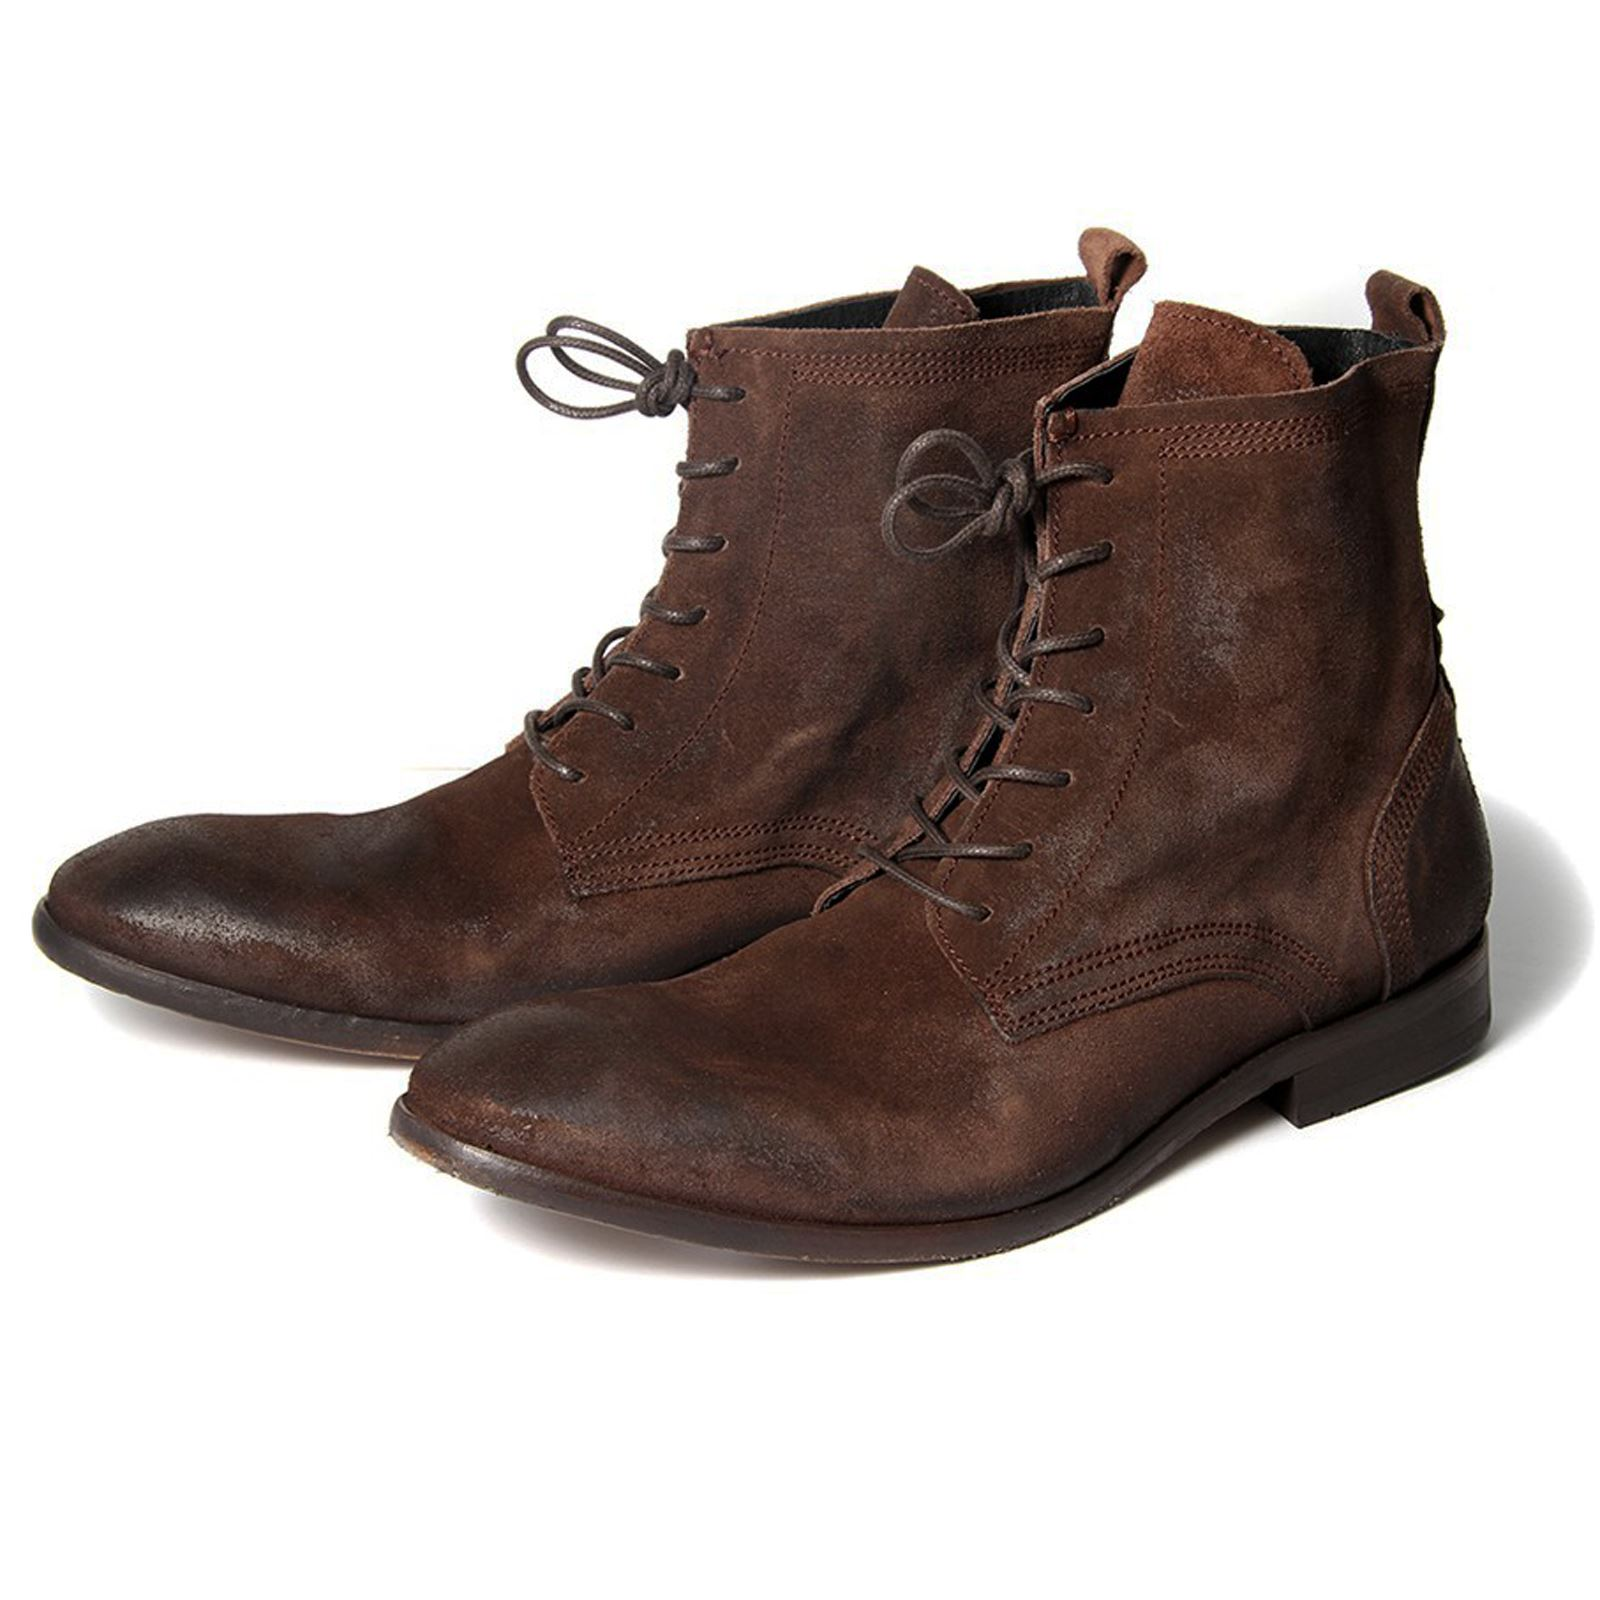 h by hudson boots swathmore brown suede mens boot ebay